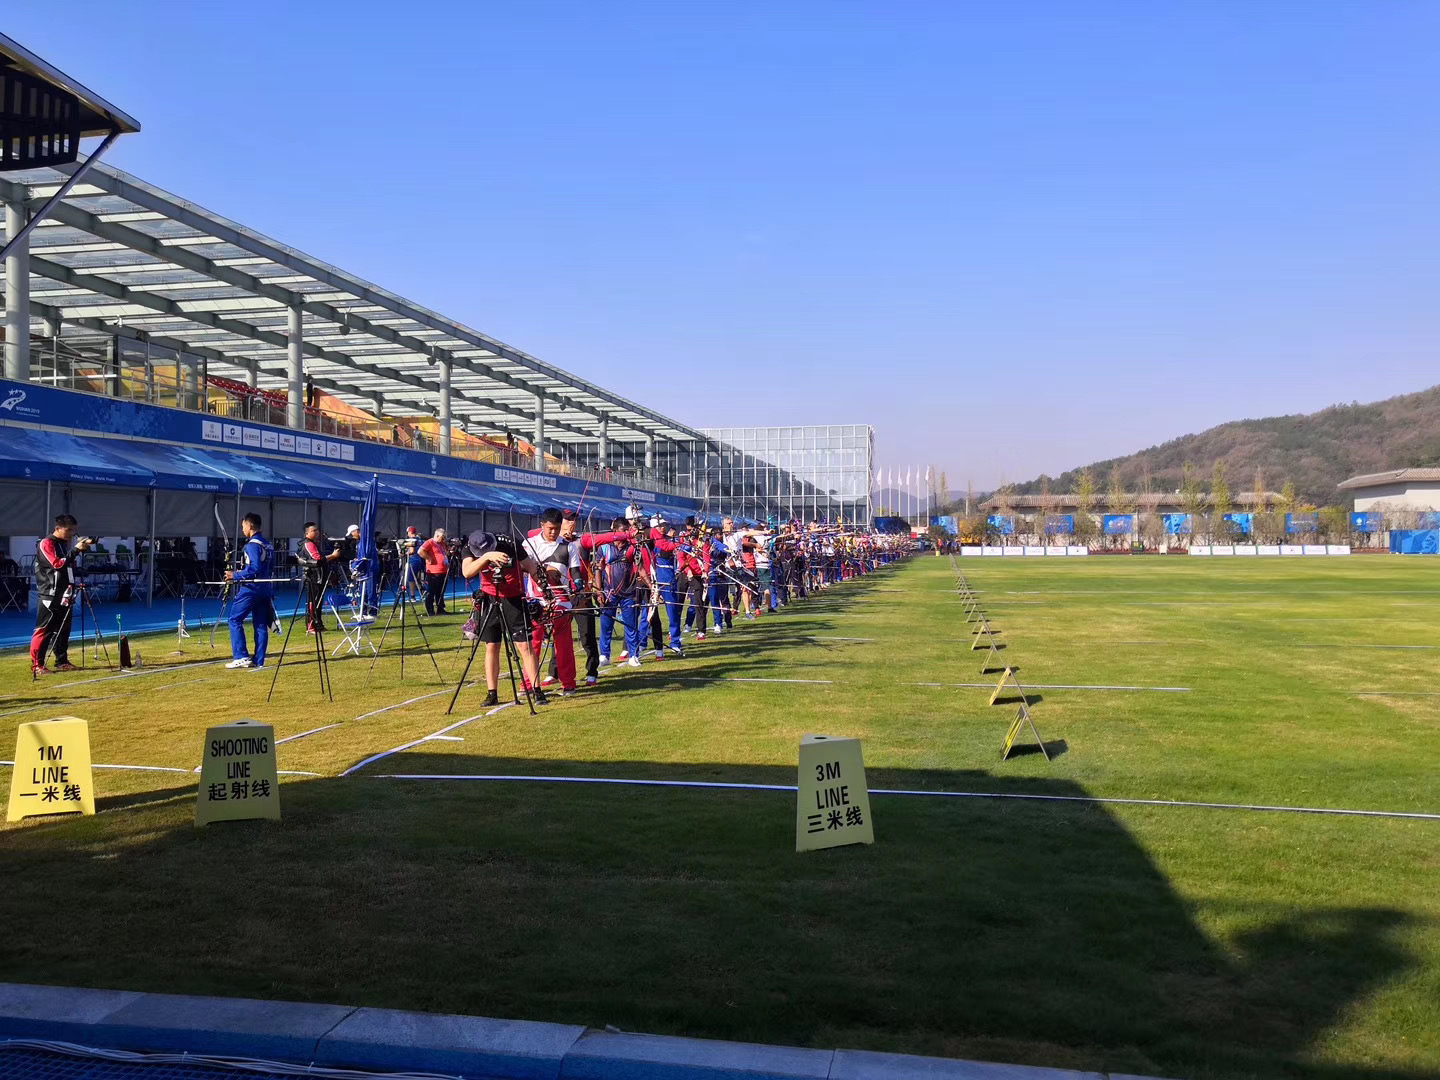 【2019 Military World Games】Relacart wireless audio system fully covers multiple competition venues